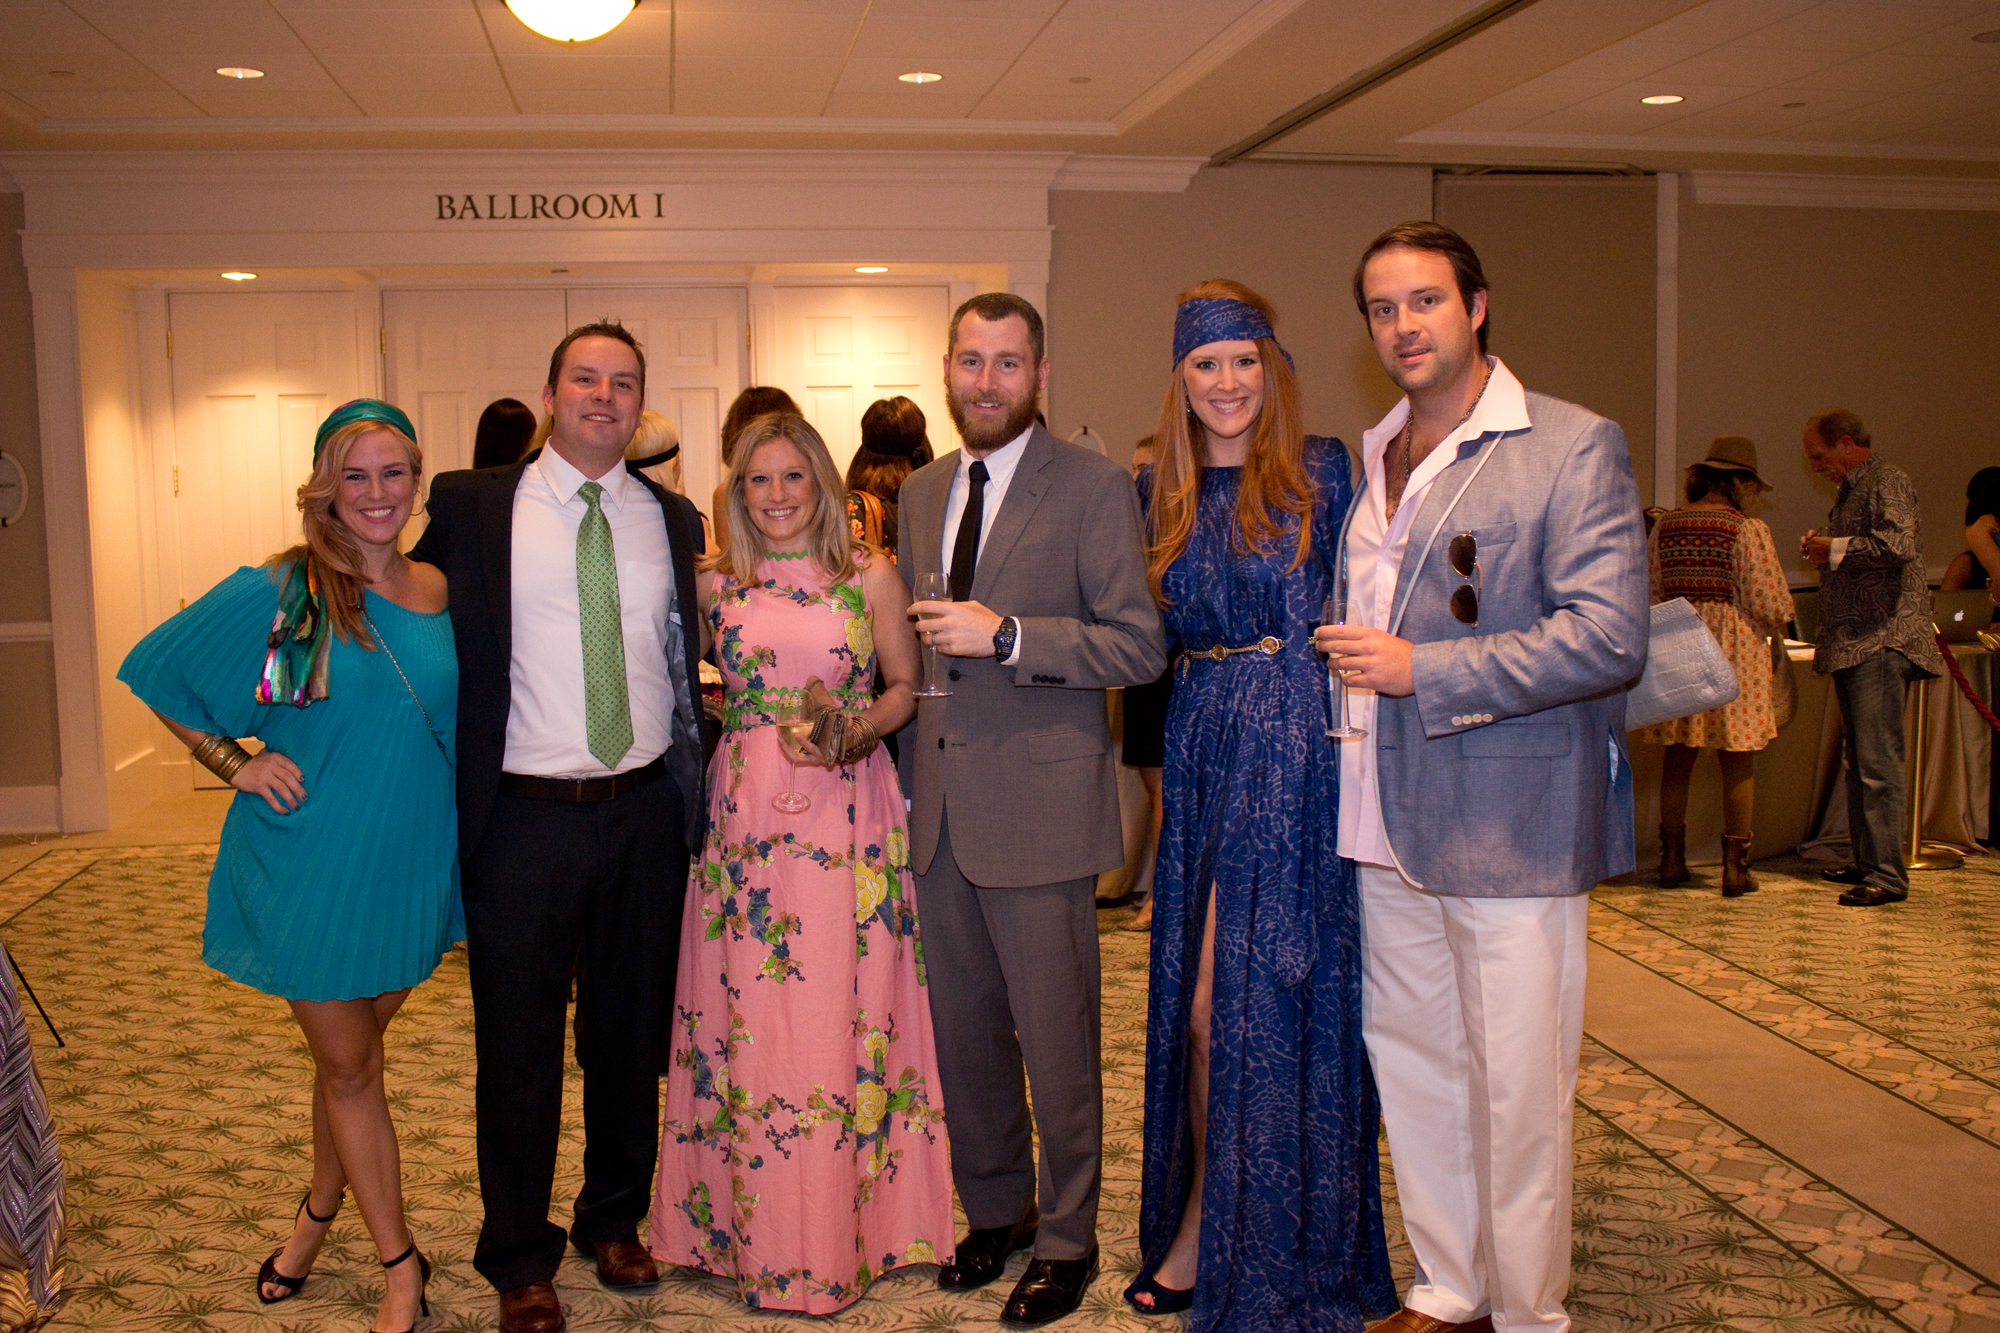 Charleston Magazine Club director Angharad Chester-Jones with Stephen Williams, Susie Armstrong-Tracey, Greg Tracey, Meredith Siemans, and Jonathan Tibbs